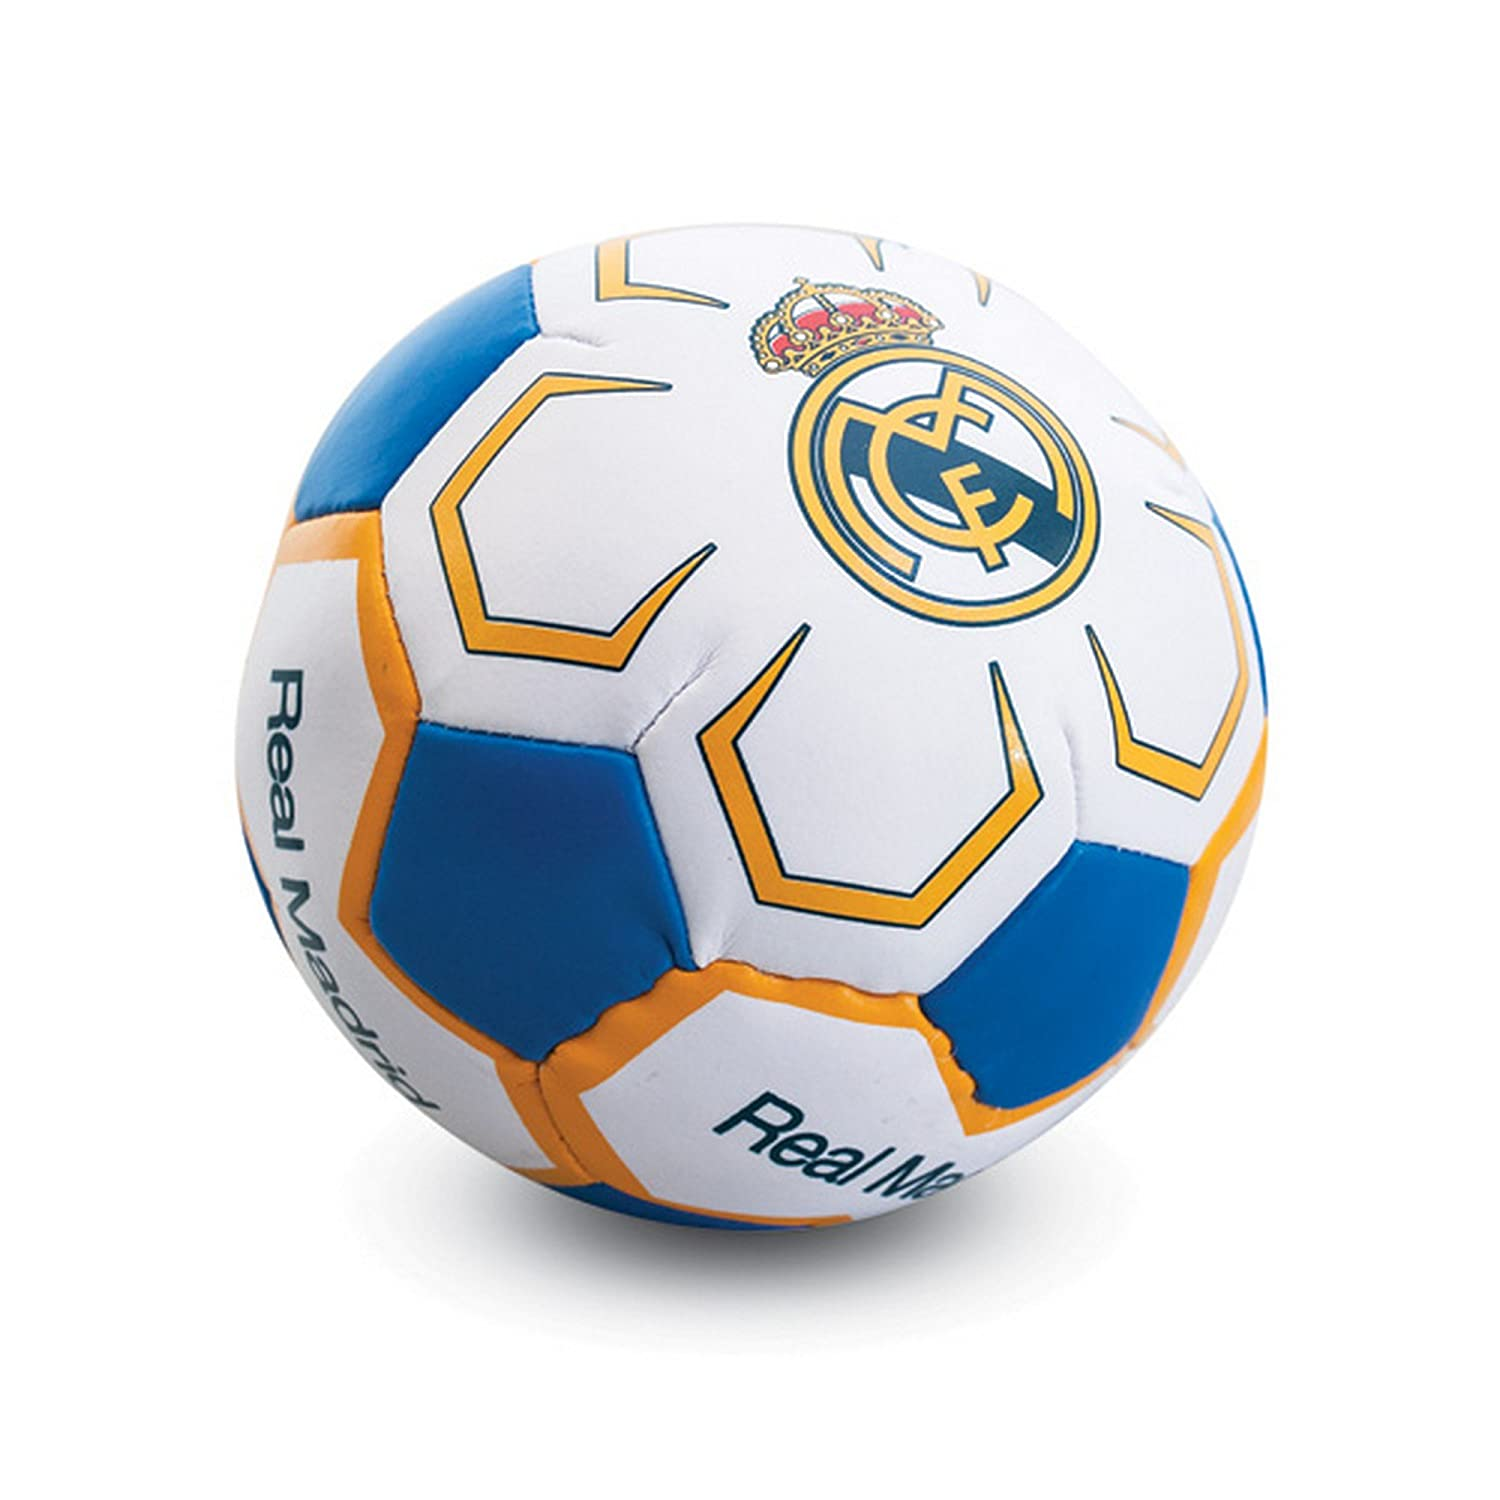 Real Madrid CF公式Crestデザイン4 in Miniソフトサッカーボール B074D83G4XWhite/Blue/Yellow One Size